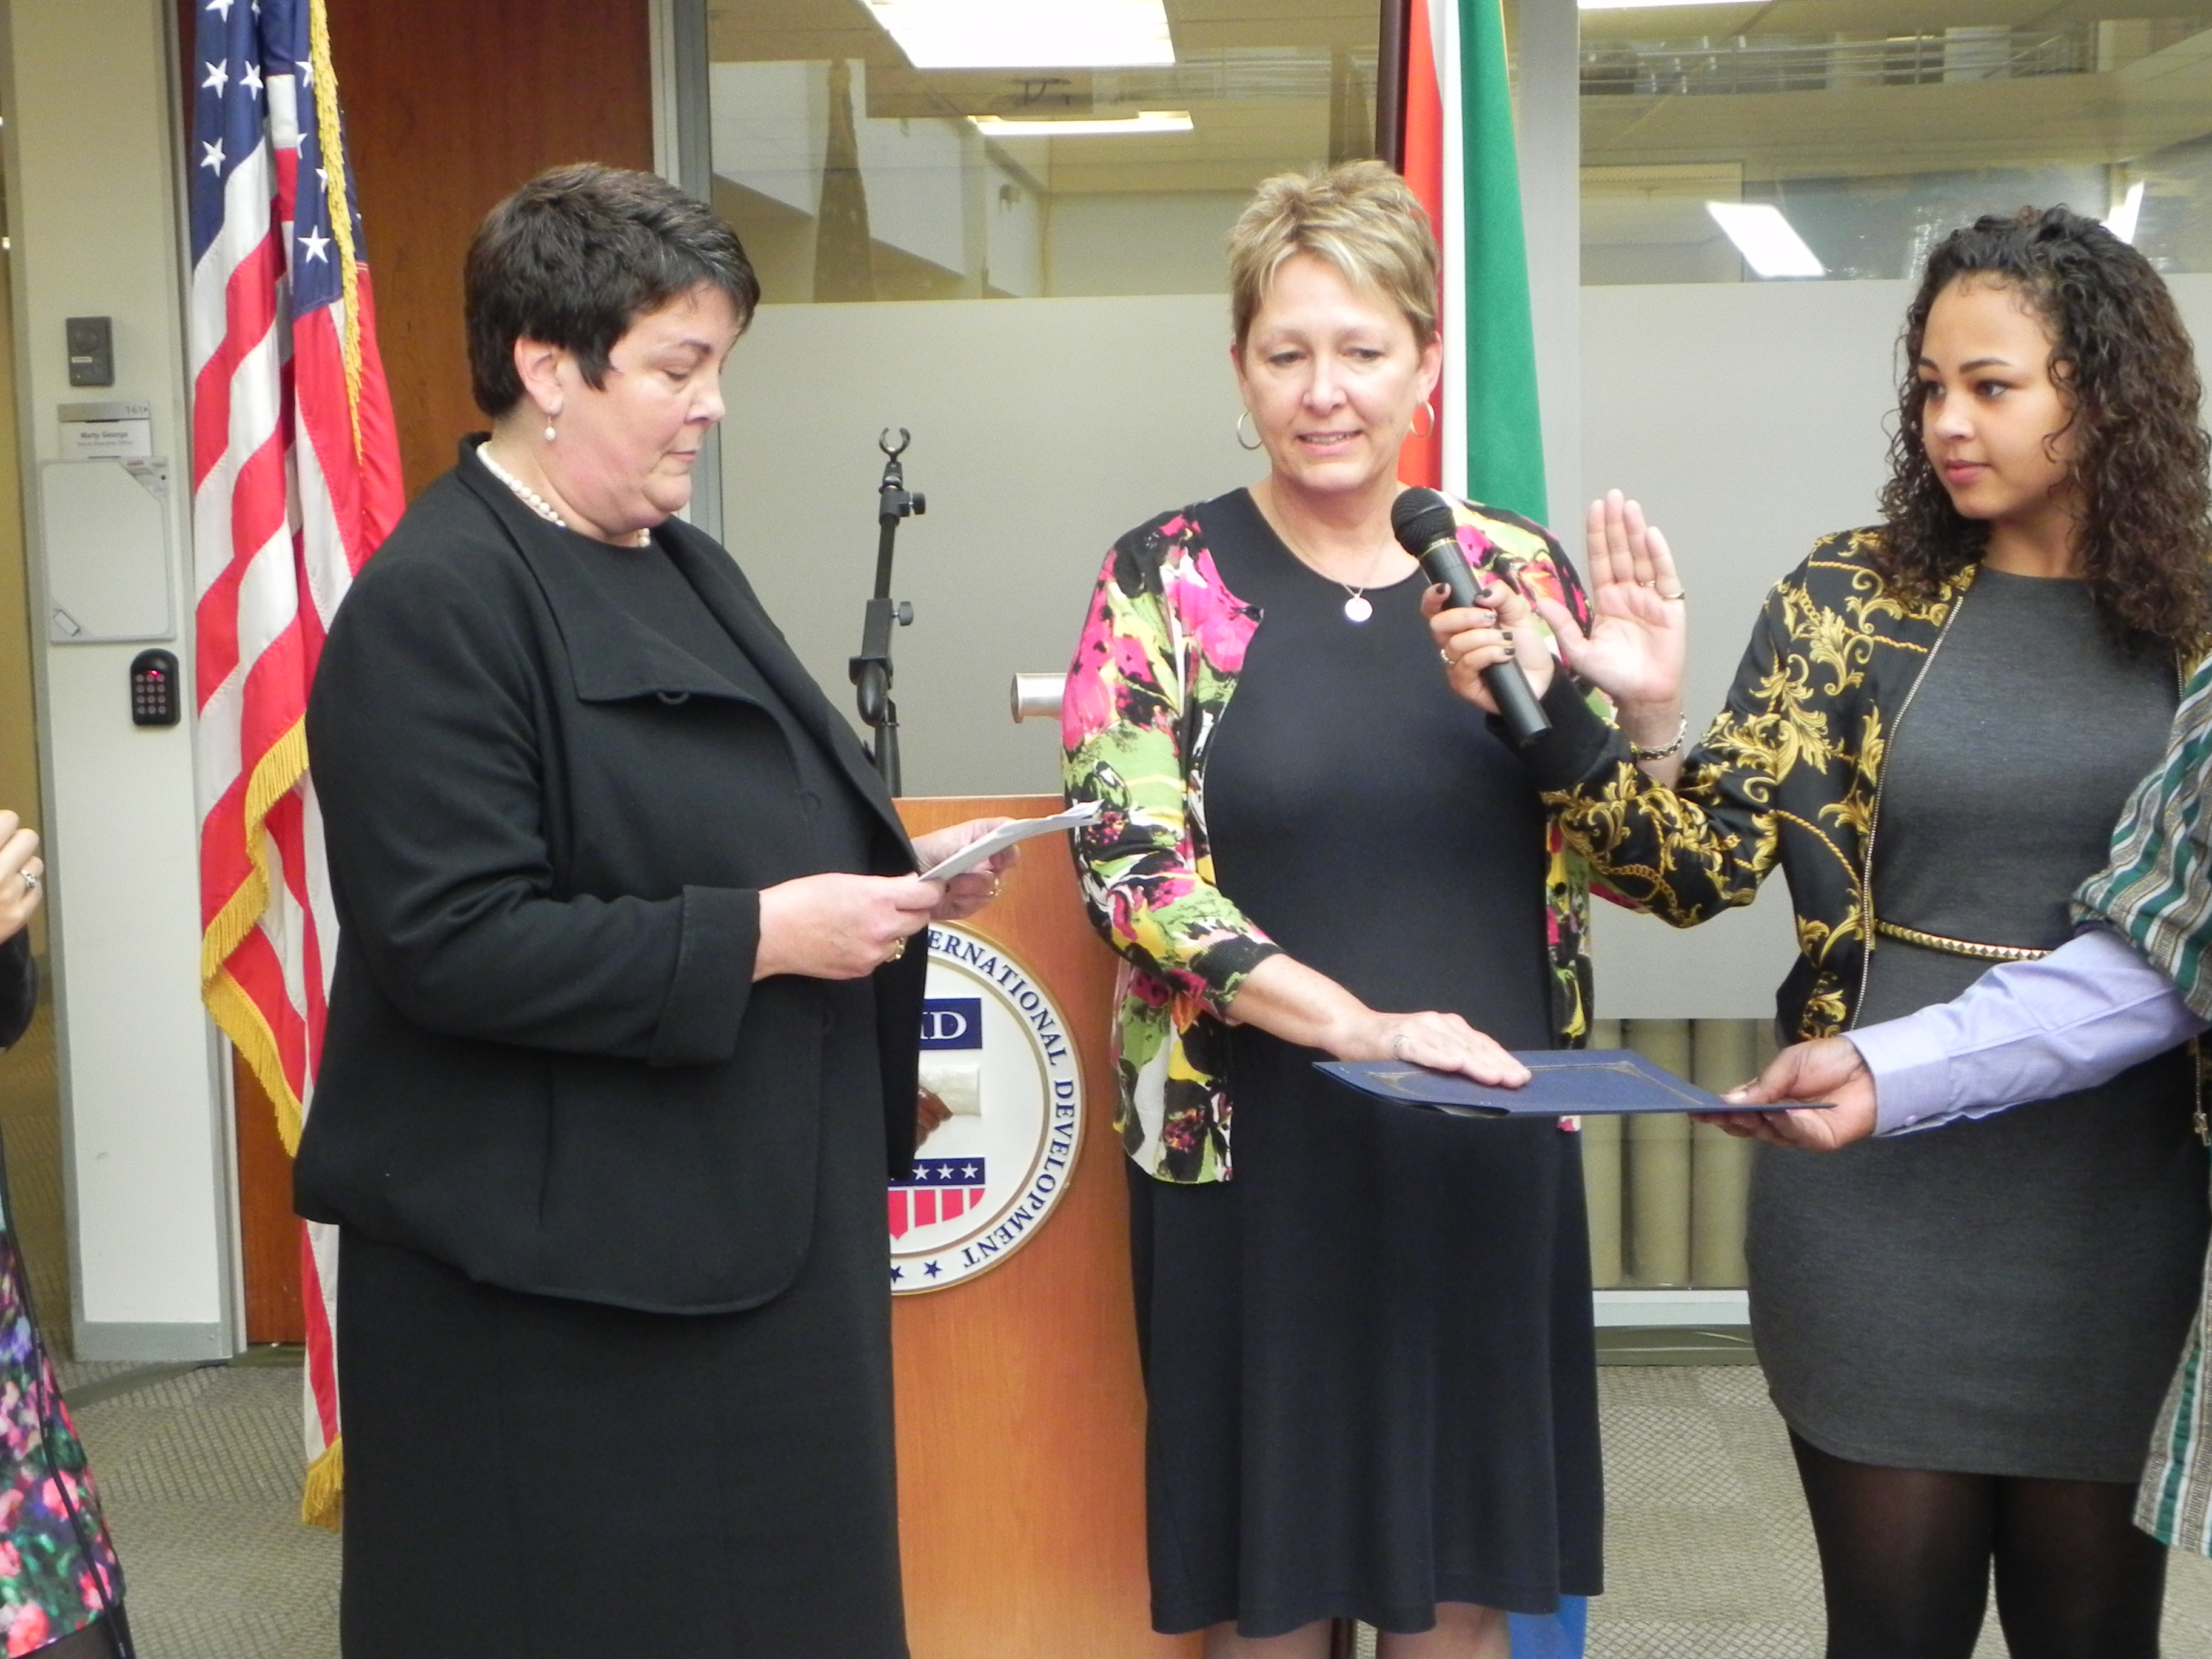 Swearing in of Mission Director Cheryl Anderson